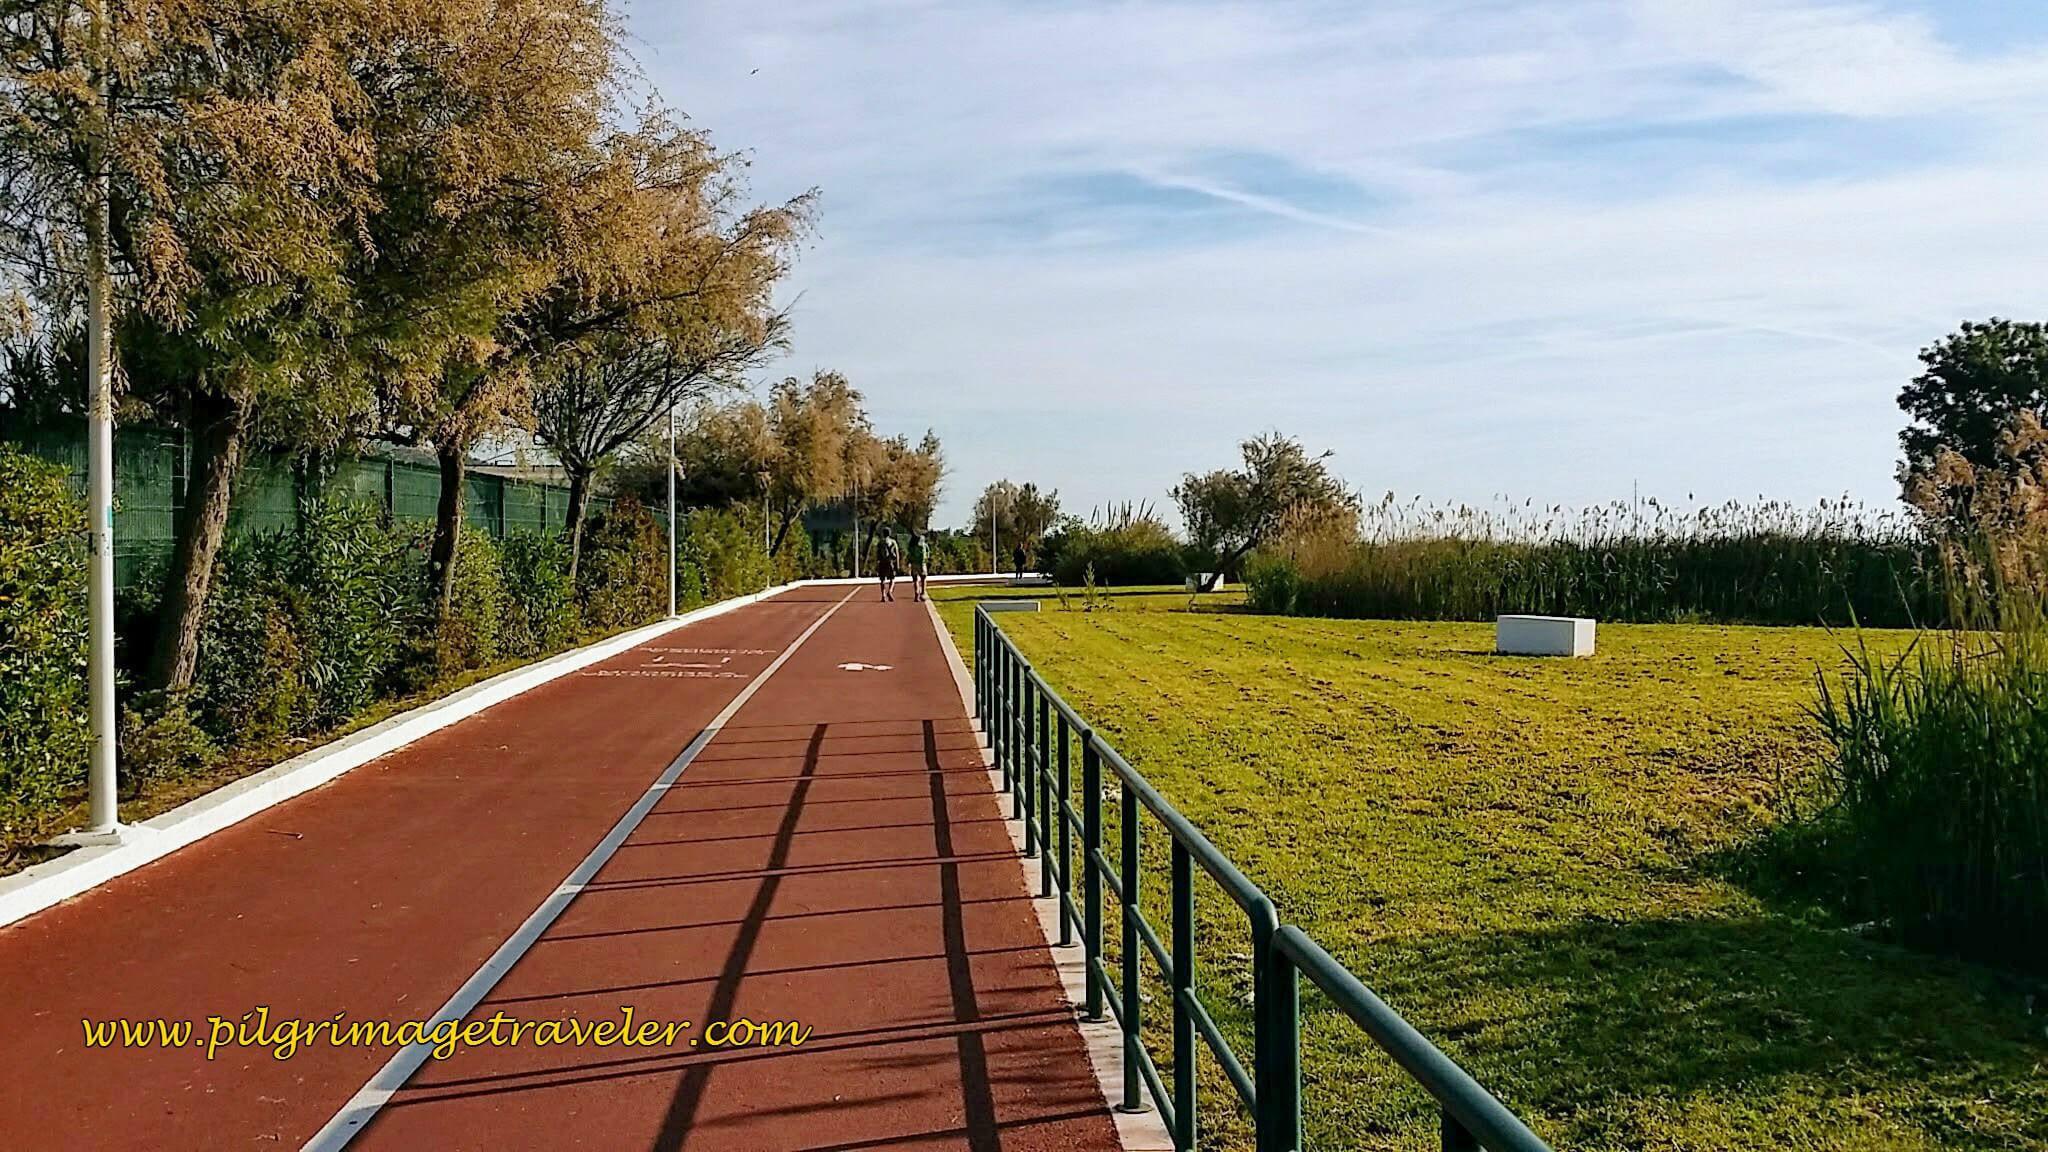 Caminho Pedronal Ribeirinho, 2-way Walking/Jogging Track Along the Tejo